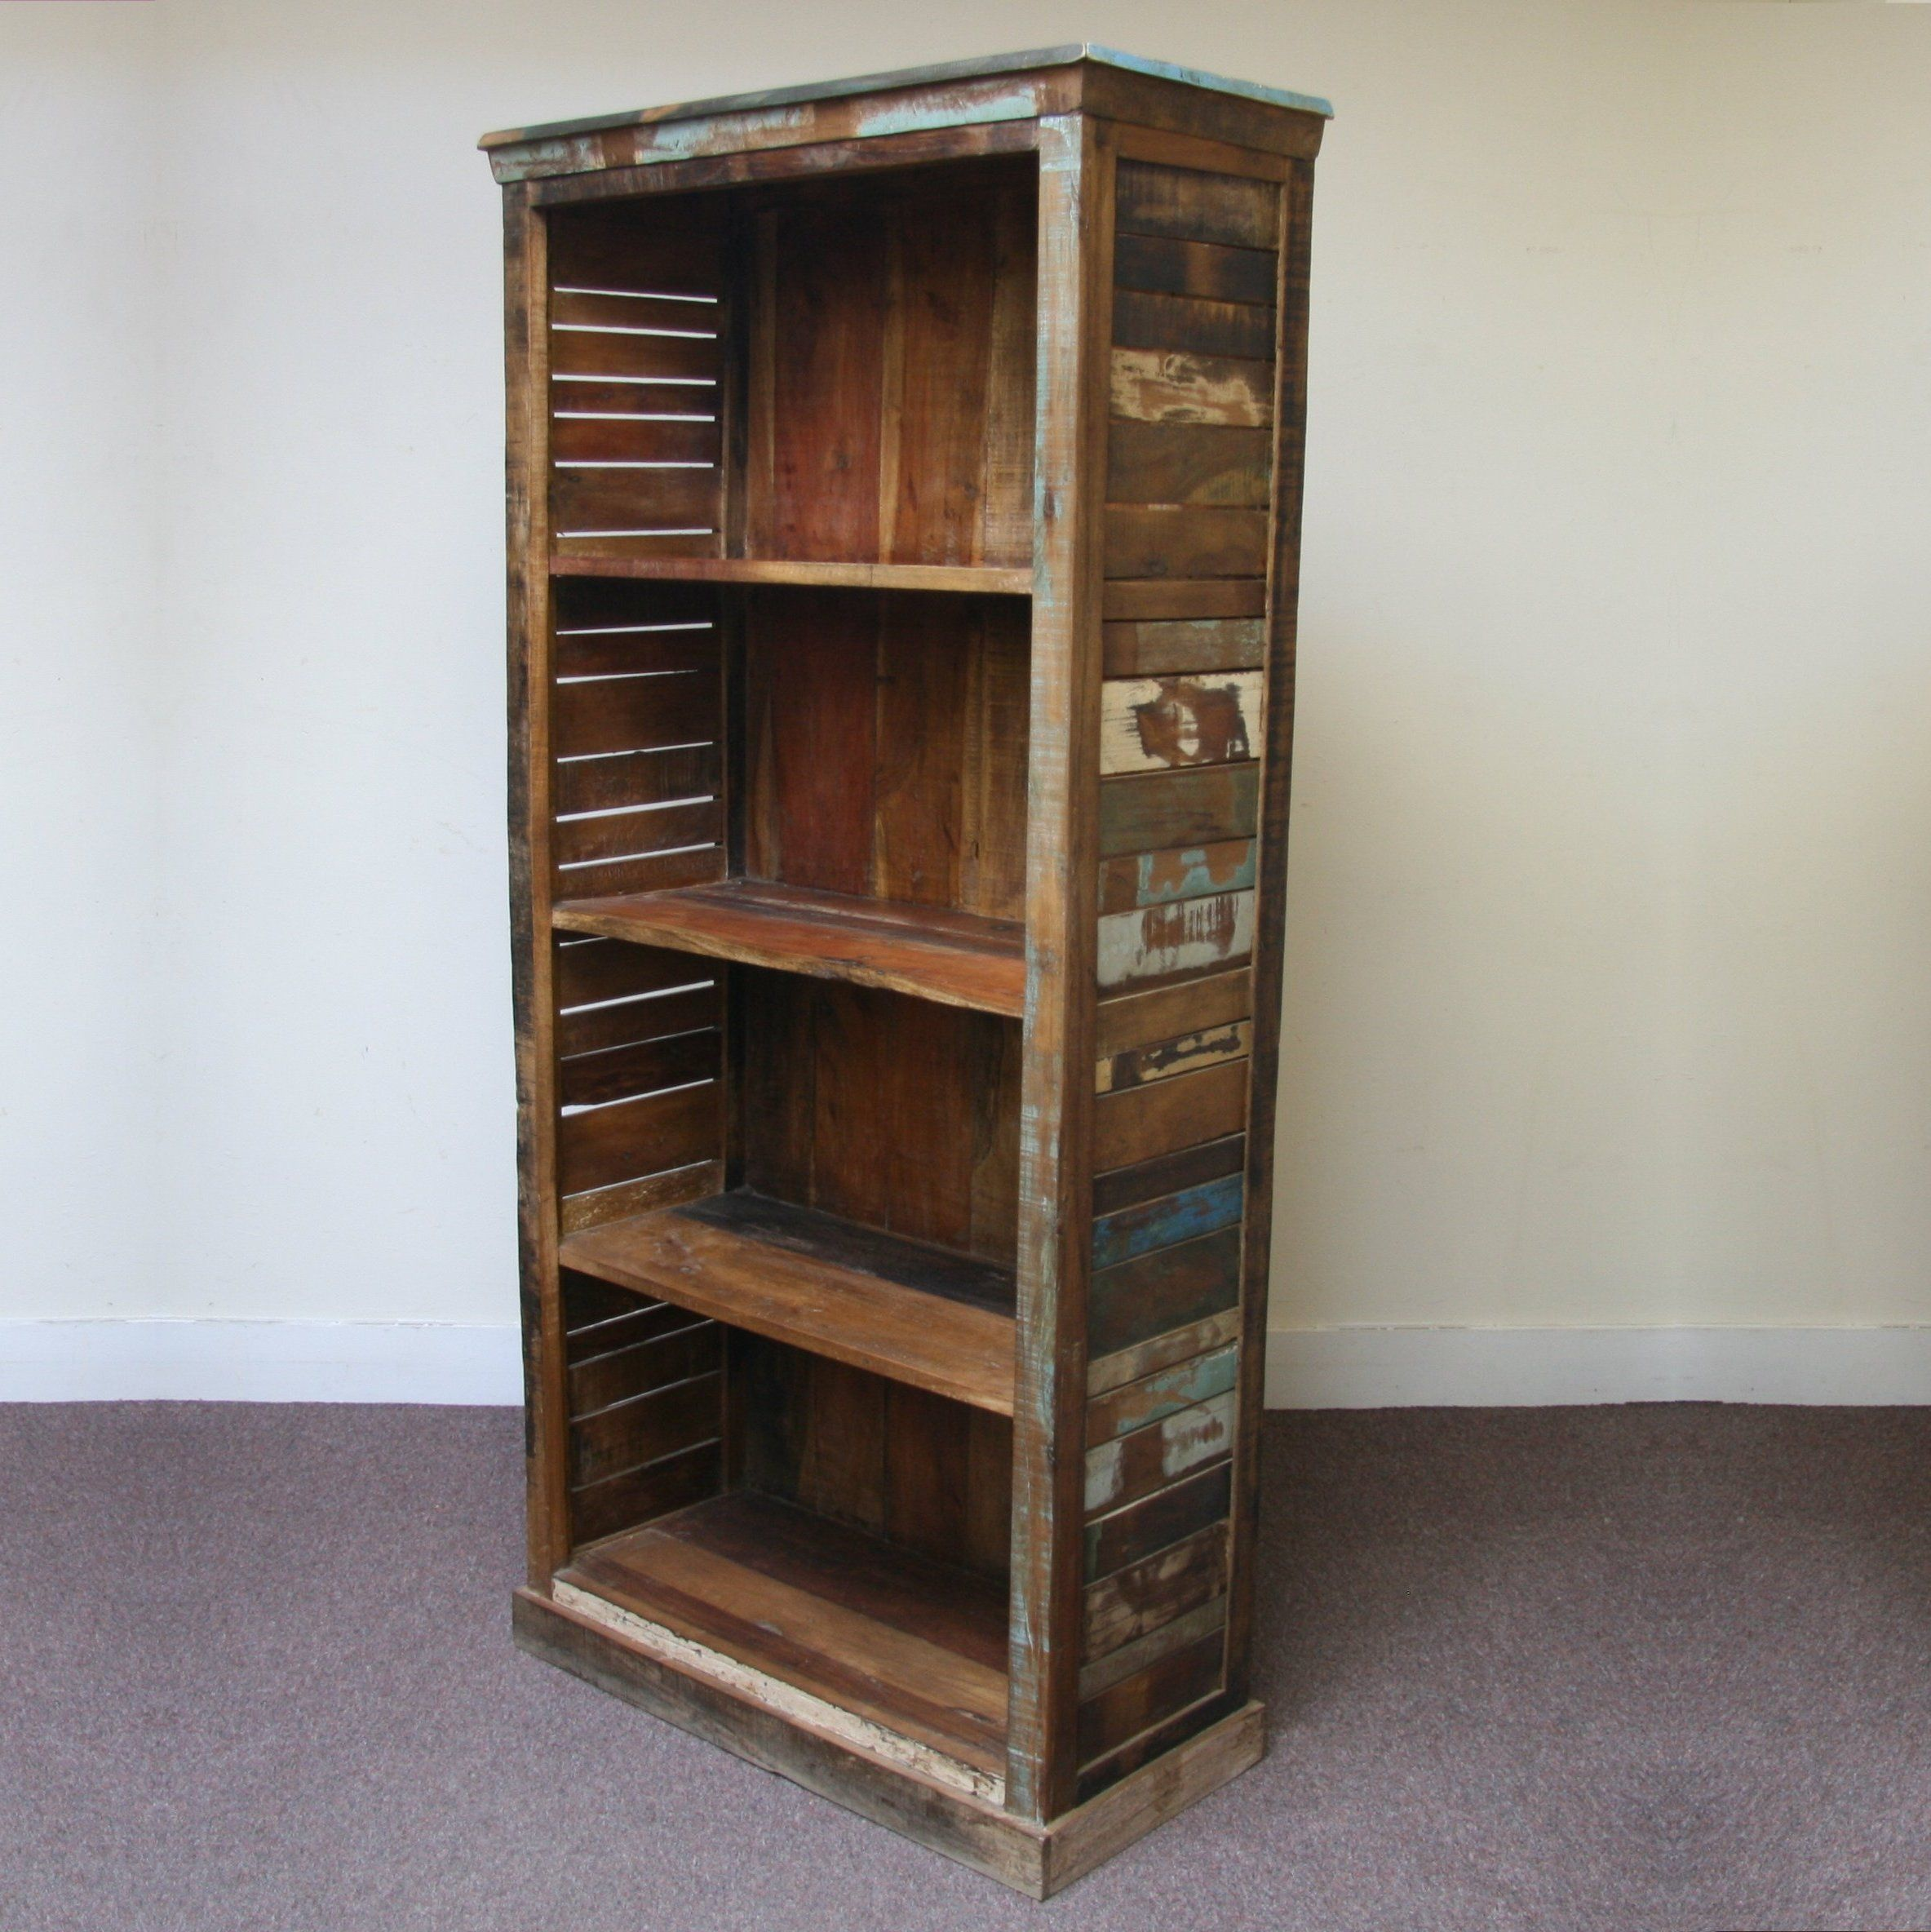 RECLAIMED WOOD BOOKCASE - JUGs Indian Furniture & Accessories